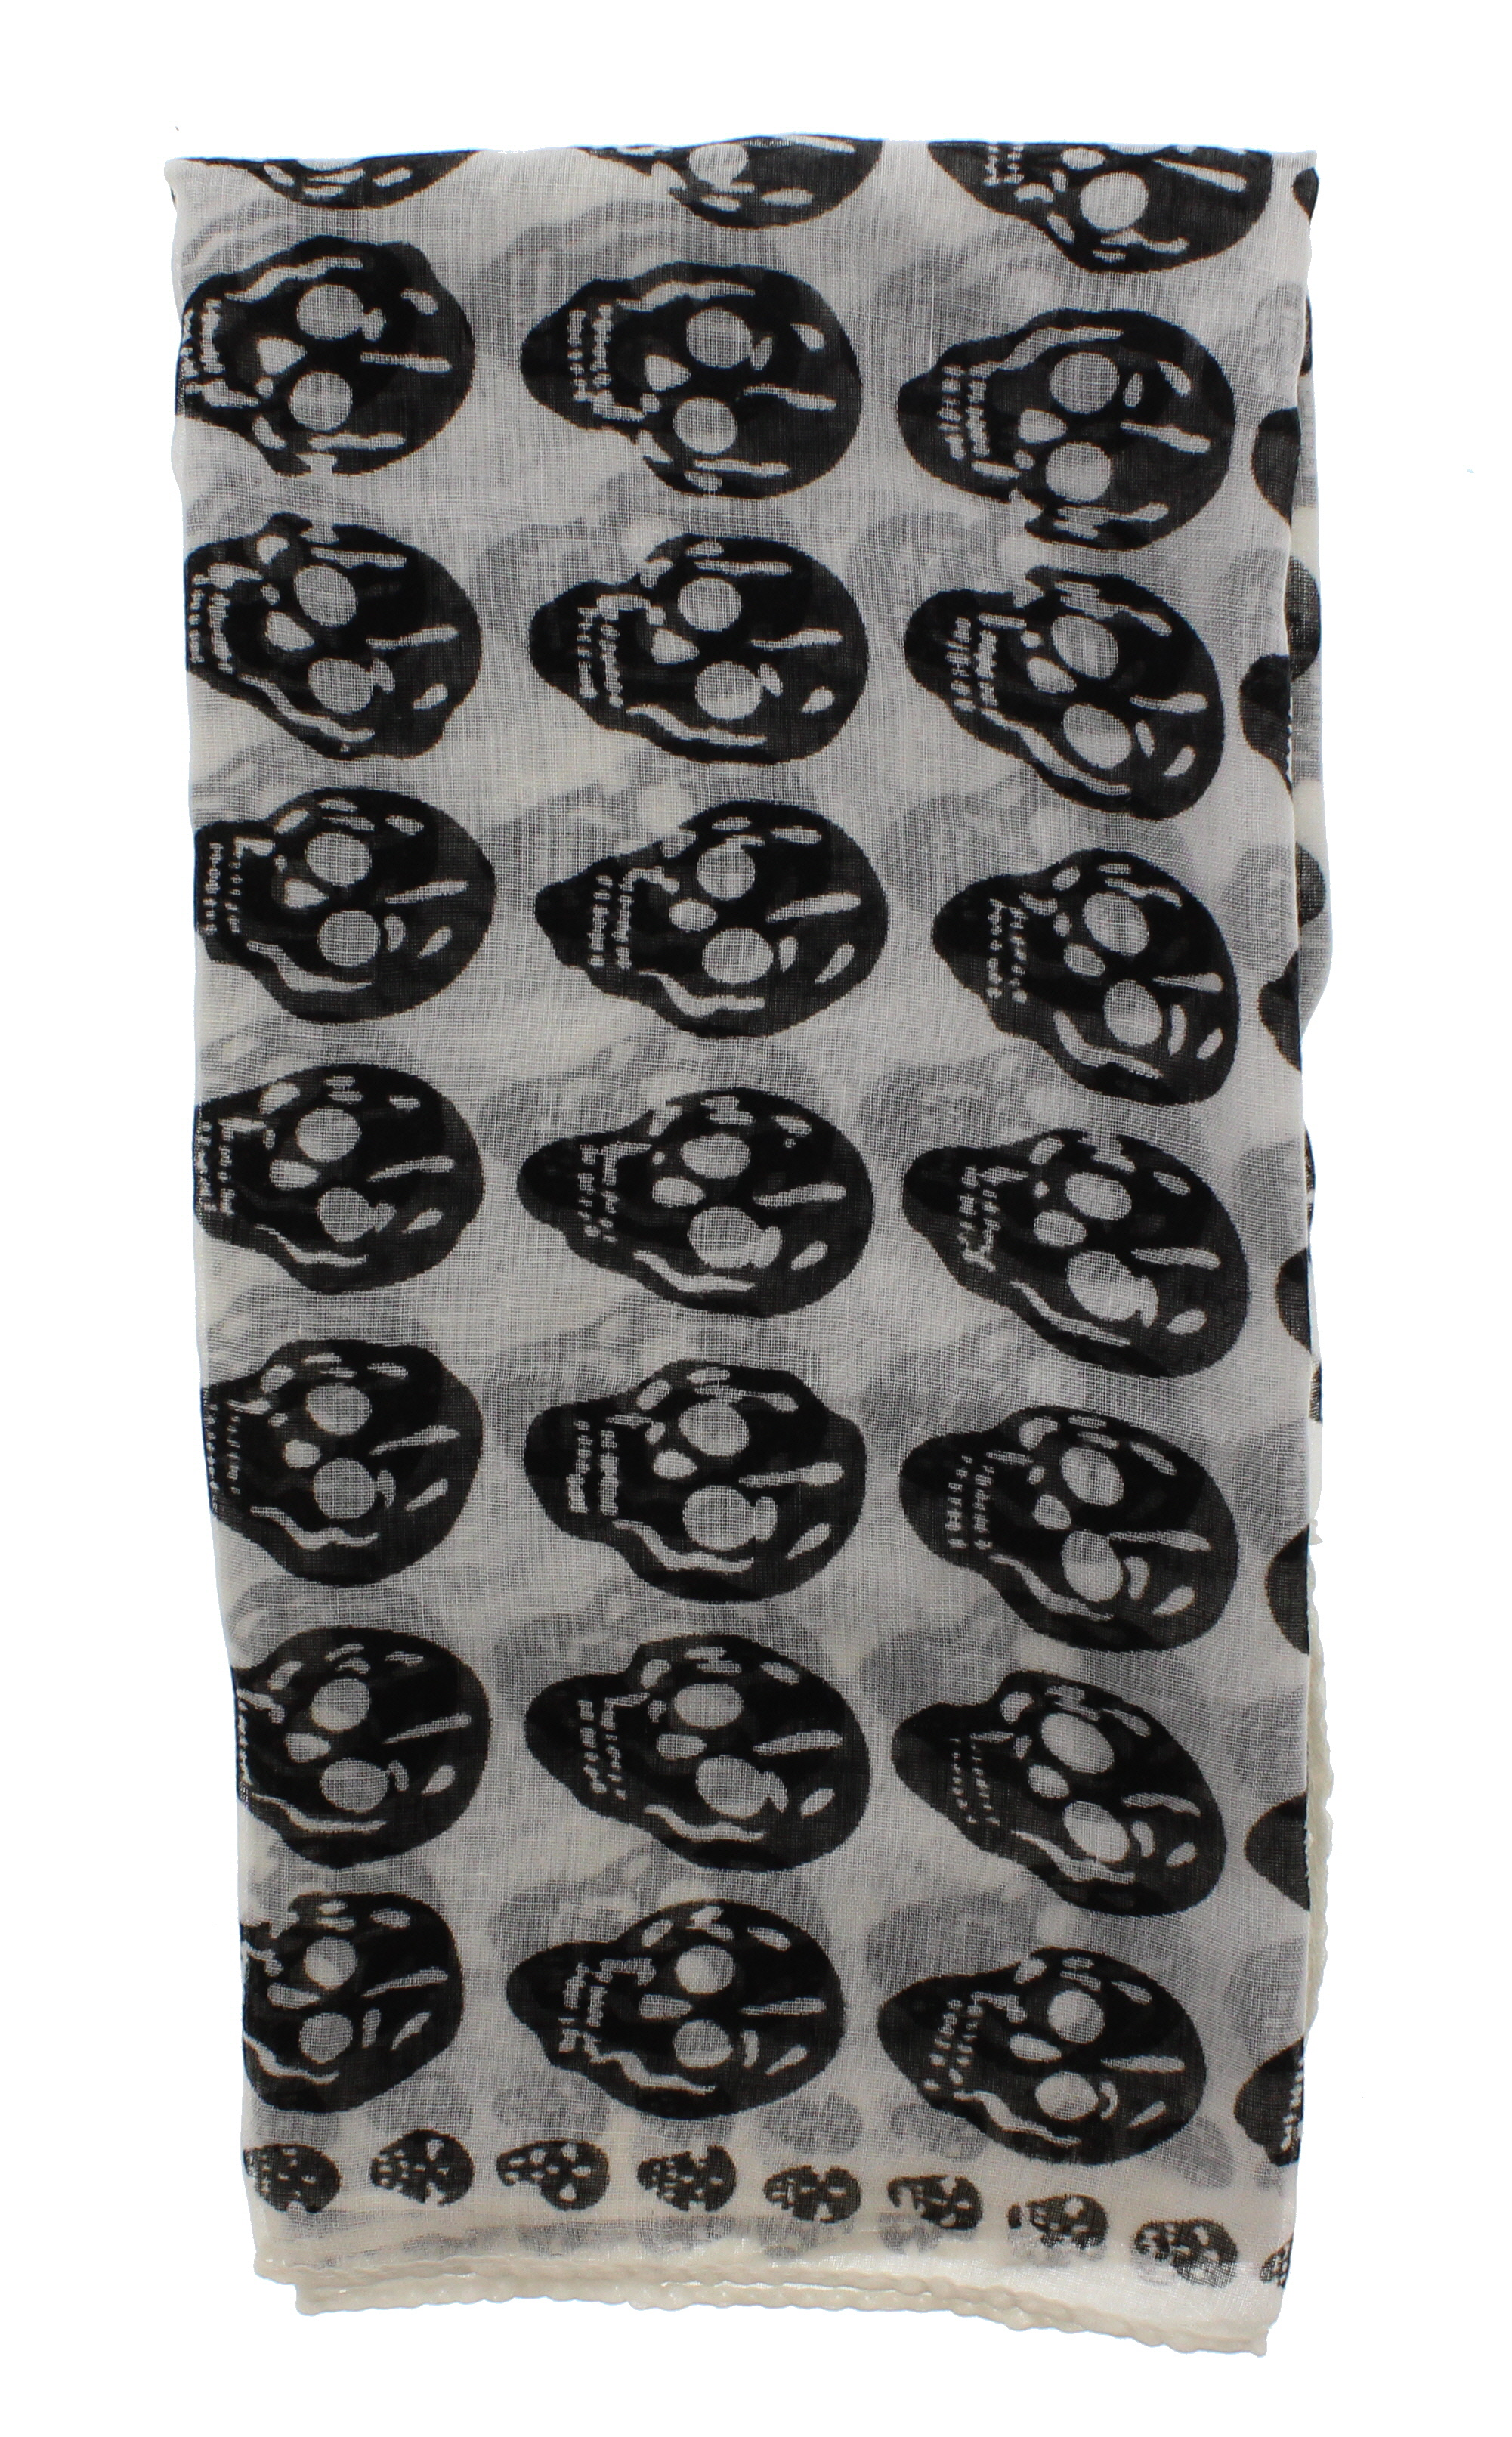 Zac/'s Alter Ego Long Lightweight Fashionable Unisex Skull Print Scarf